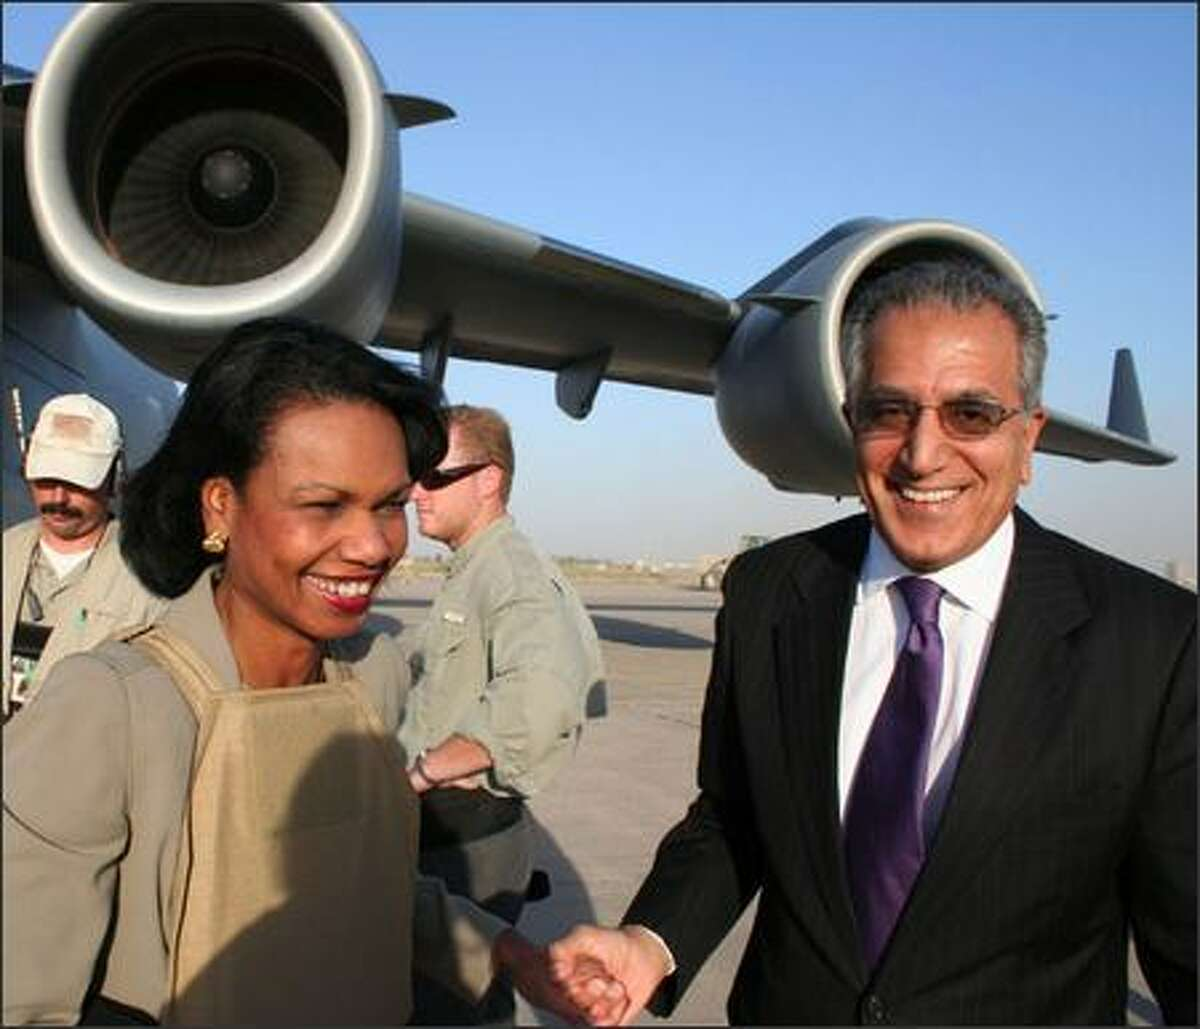 Secretary of State Condoleezza Rice arrived Thursday in Baghdad for meetings with Iraqi political leaders. She's pictured with U.S. Ambassador Zalmay Khalilzad.